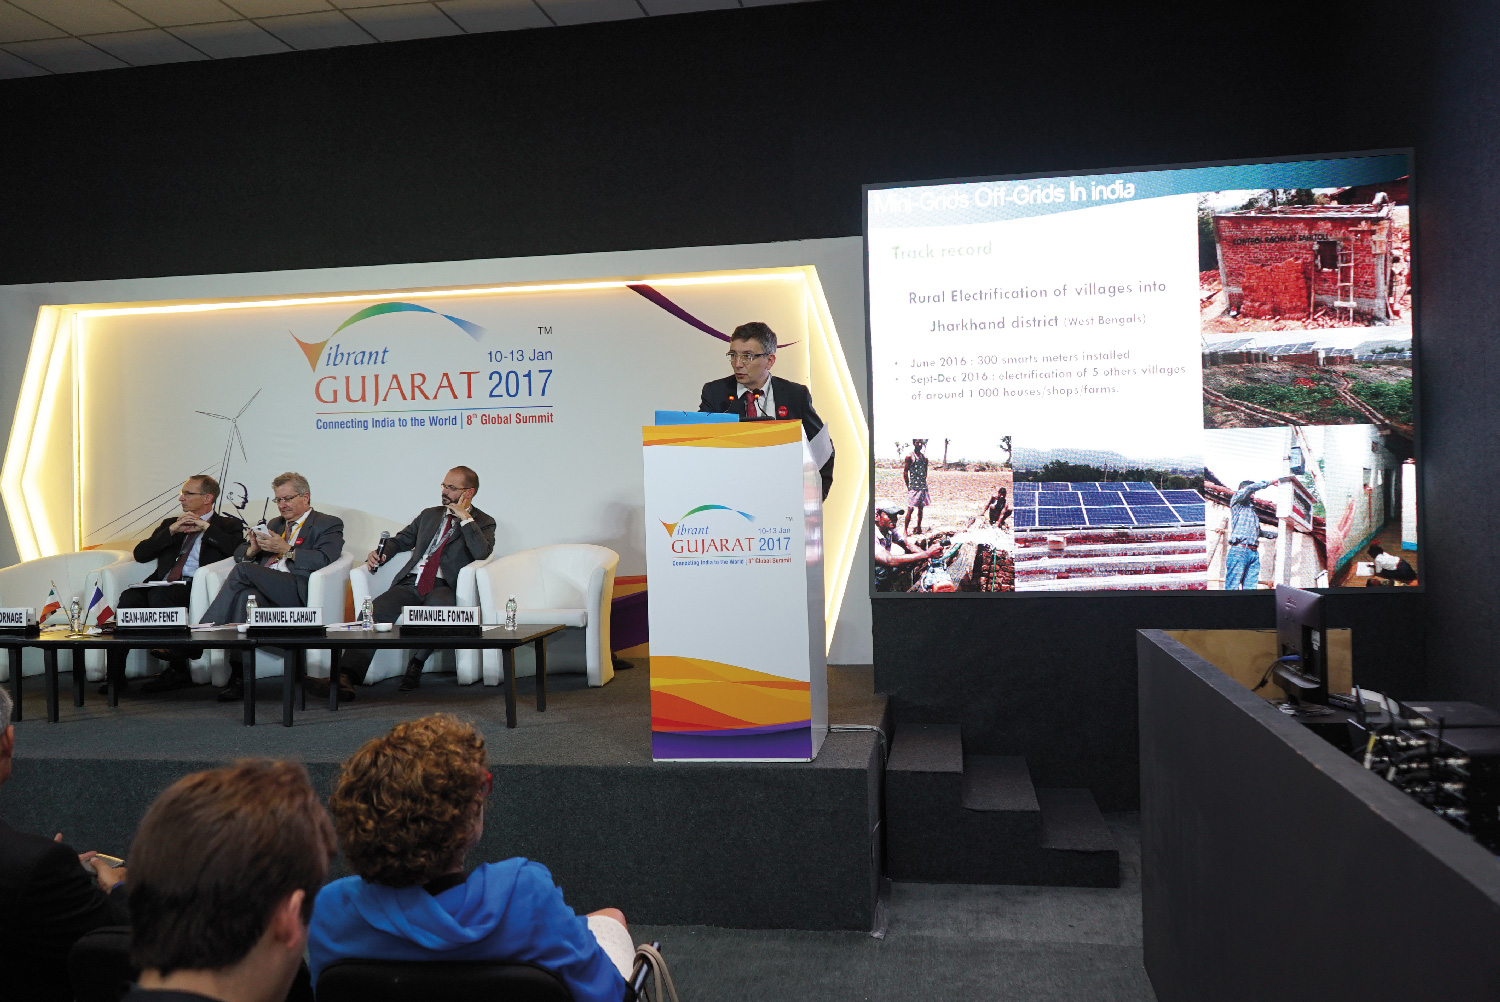 VERTEOLE was selected to present at the Indian show (VibrantGujarat 2017)